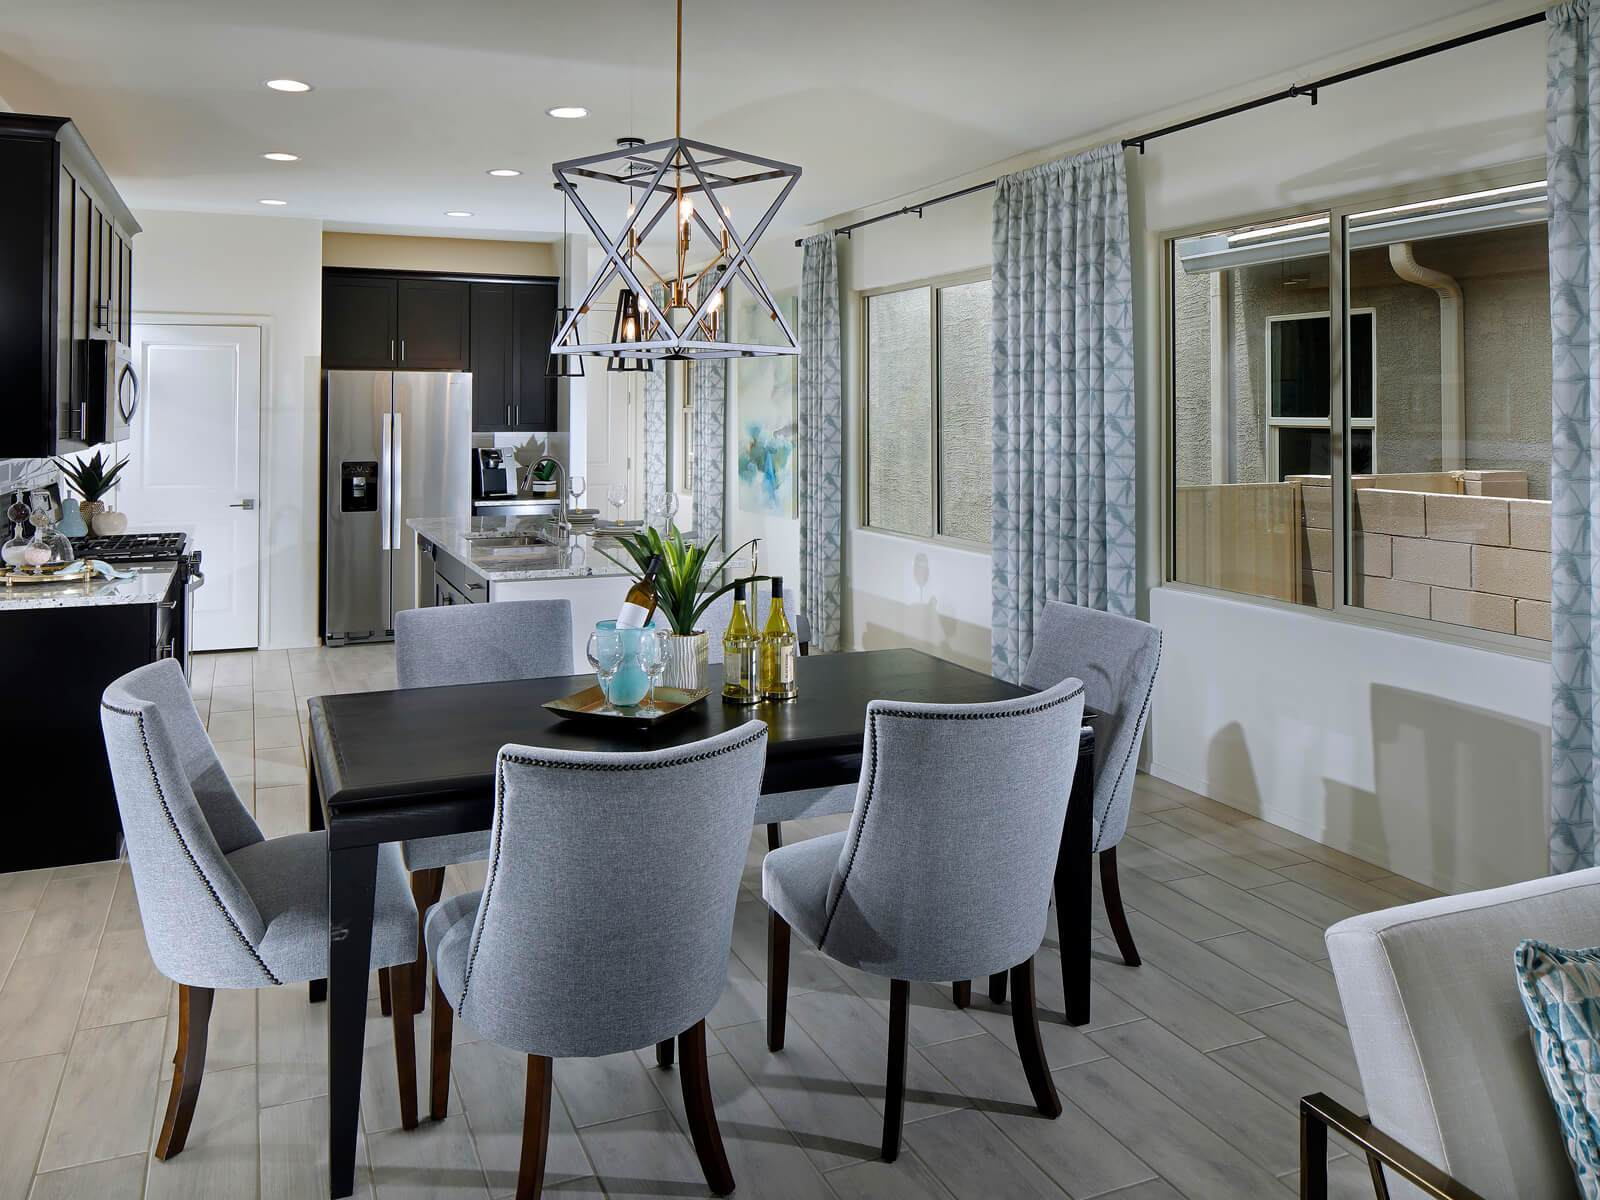 Living Area featured in the Ethan By Meritage Homes in Tucson, AZ